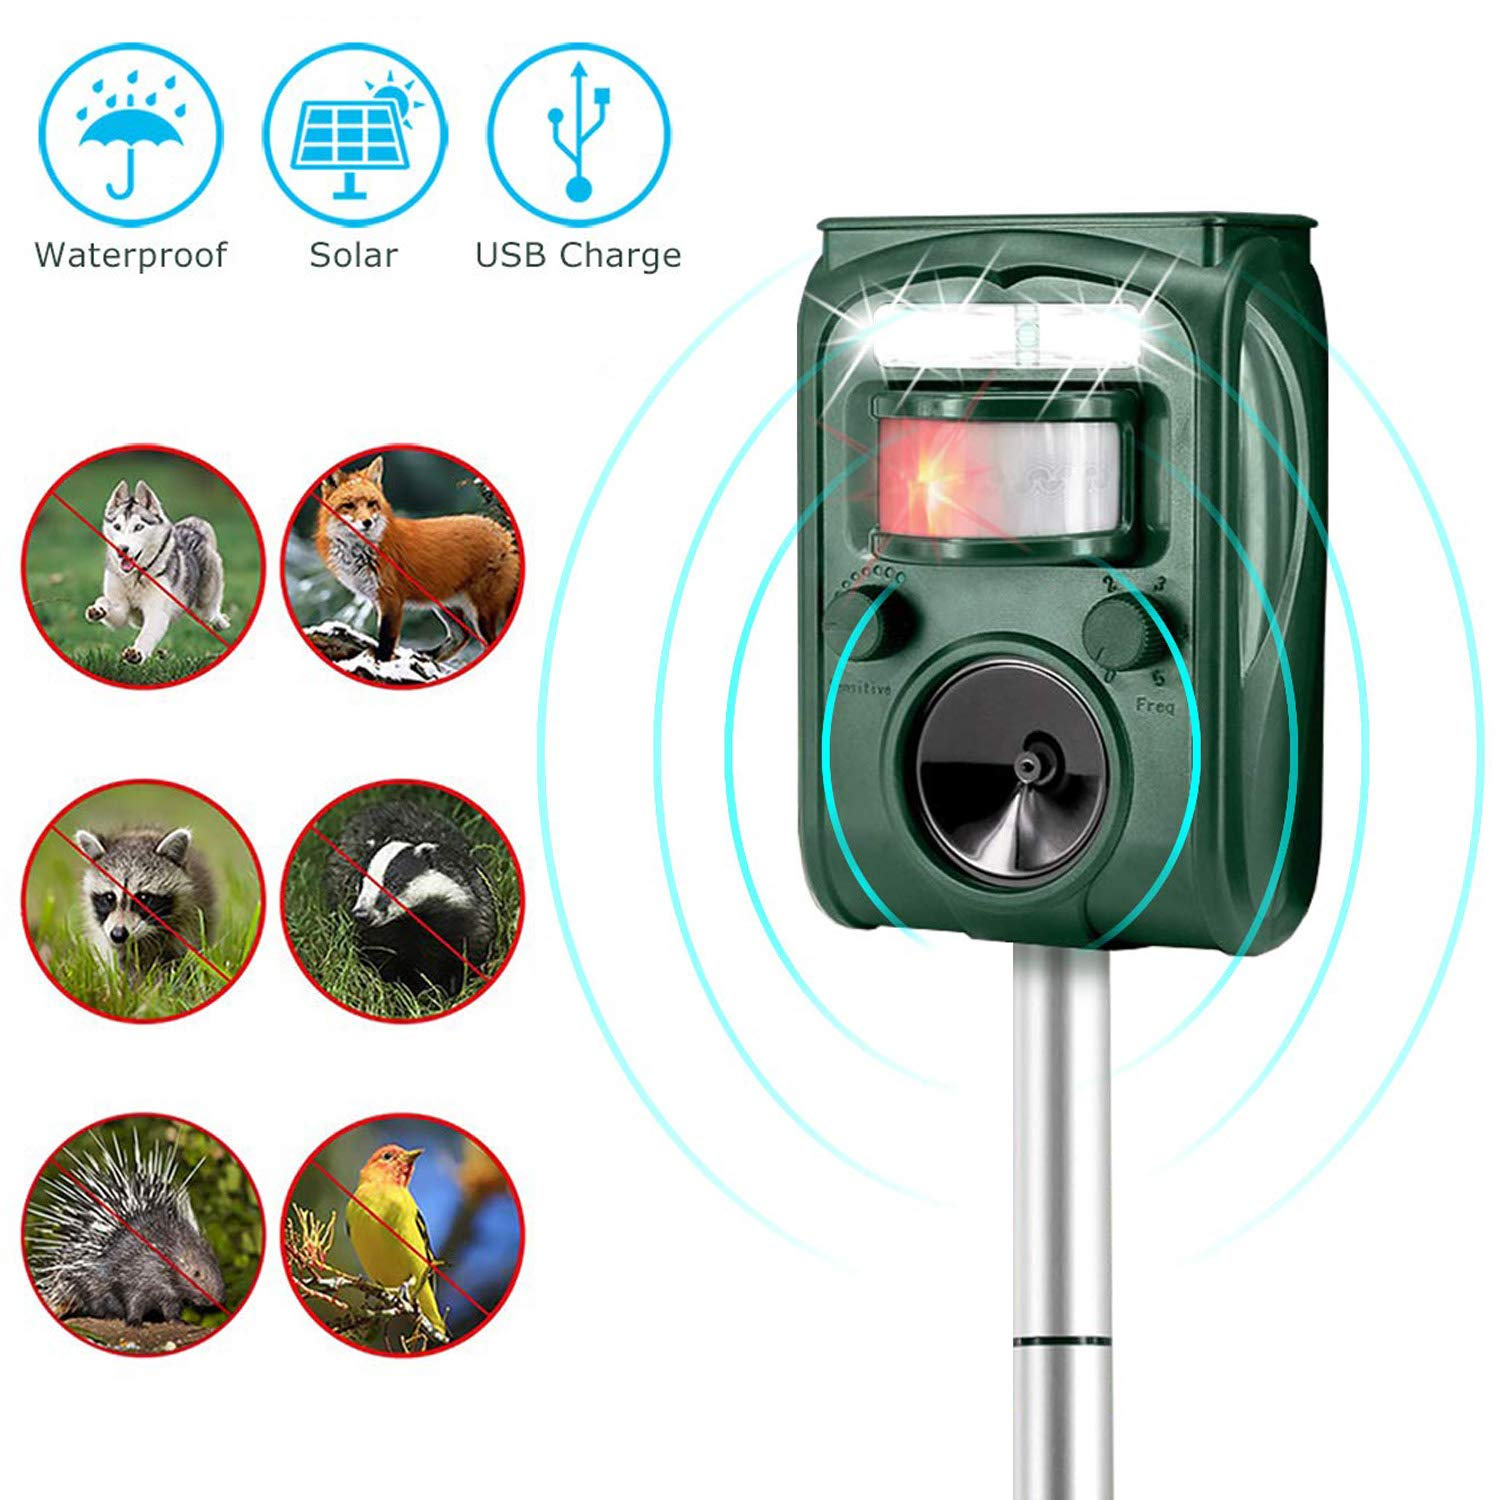 Acidea Ultrasonic Animal Repeller, Solar Powered Animal Repellent with Motion Sensor and Flashing Light, Outdoor Weatherproof Repeller Repels Dogs, Cats, Deer, Squirrels, Foxes, Raccoons product image